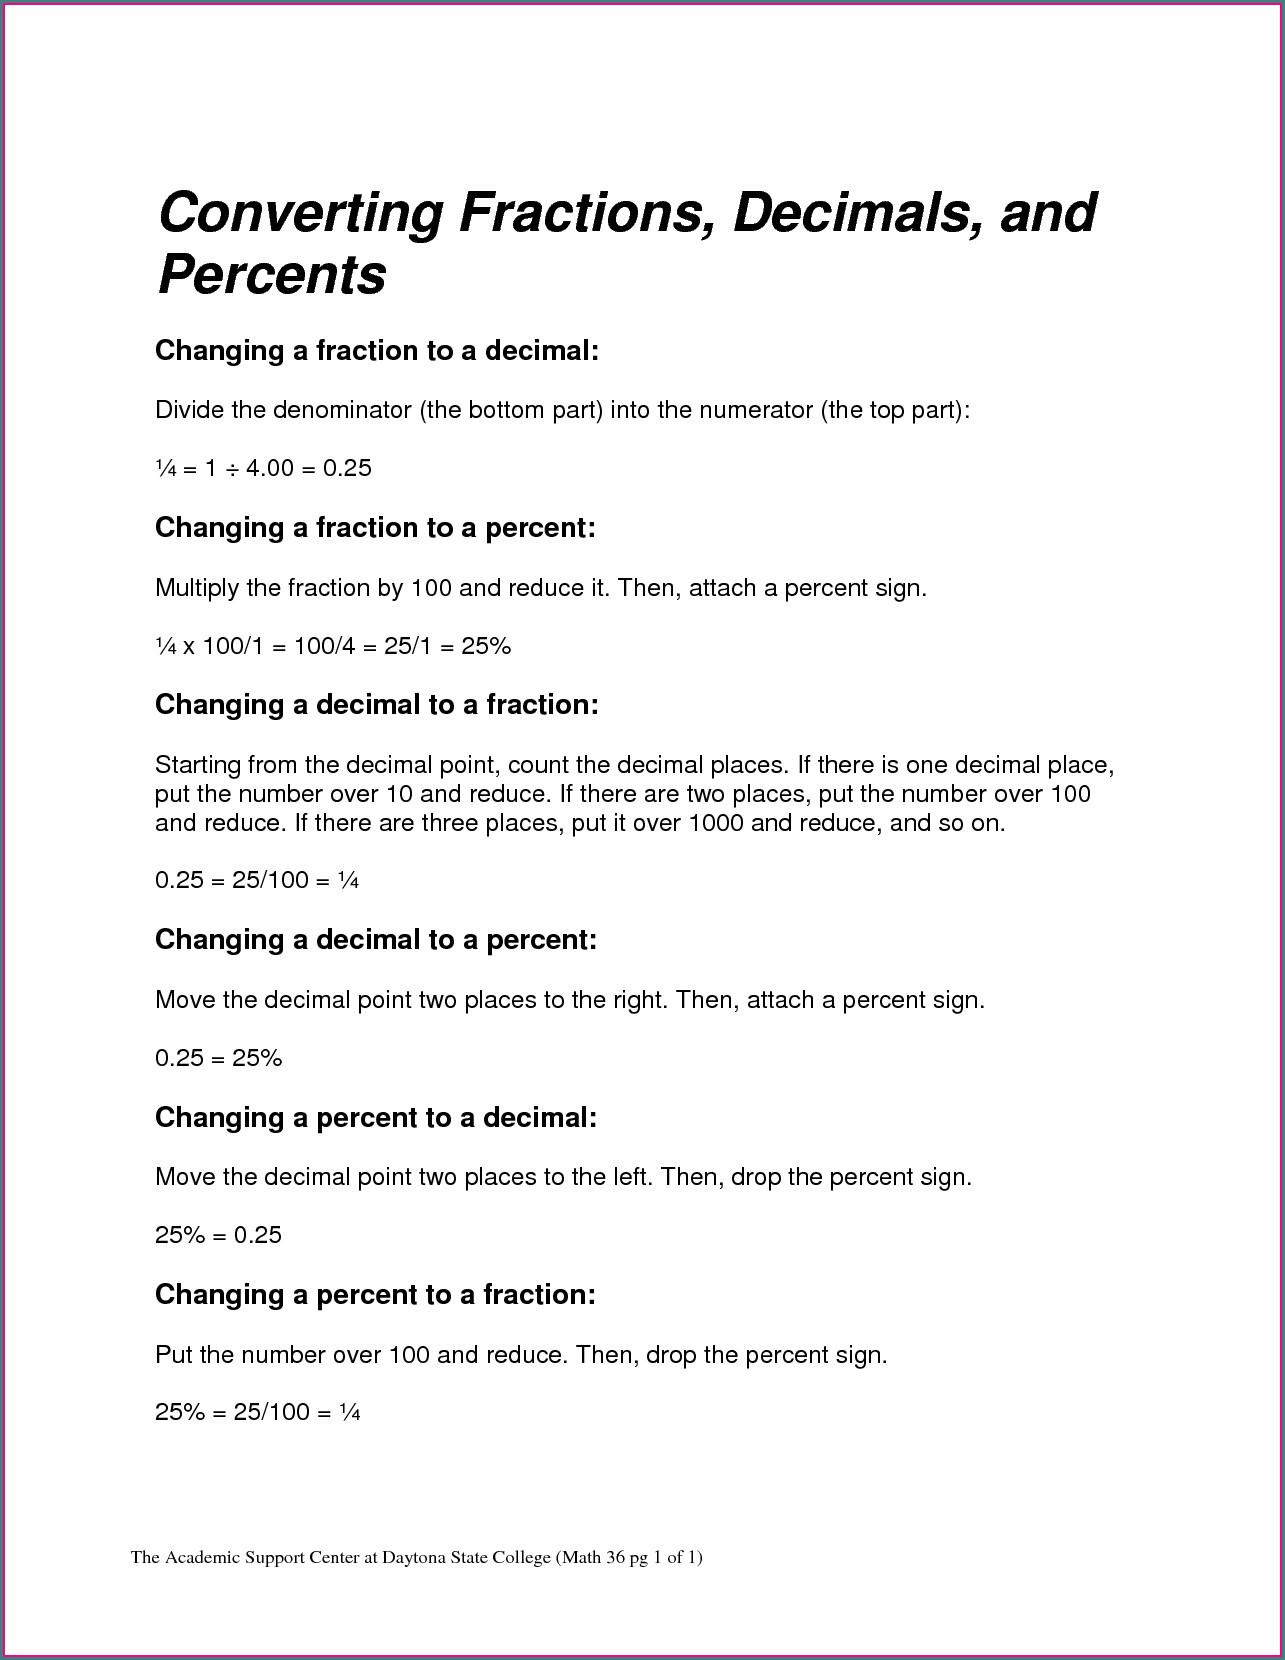 Converting Fractions Into Decimals Worksheet